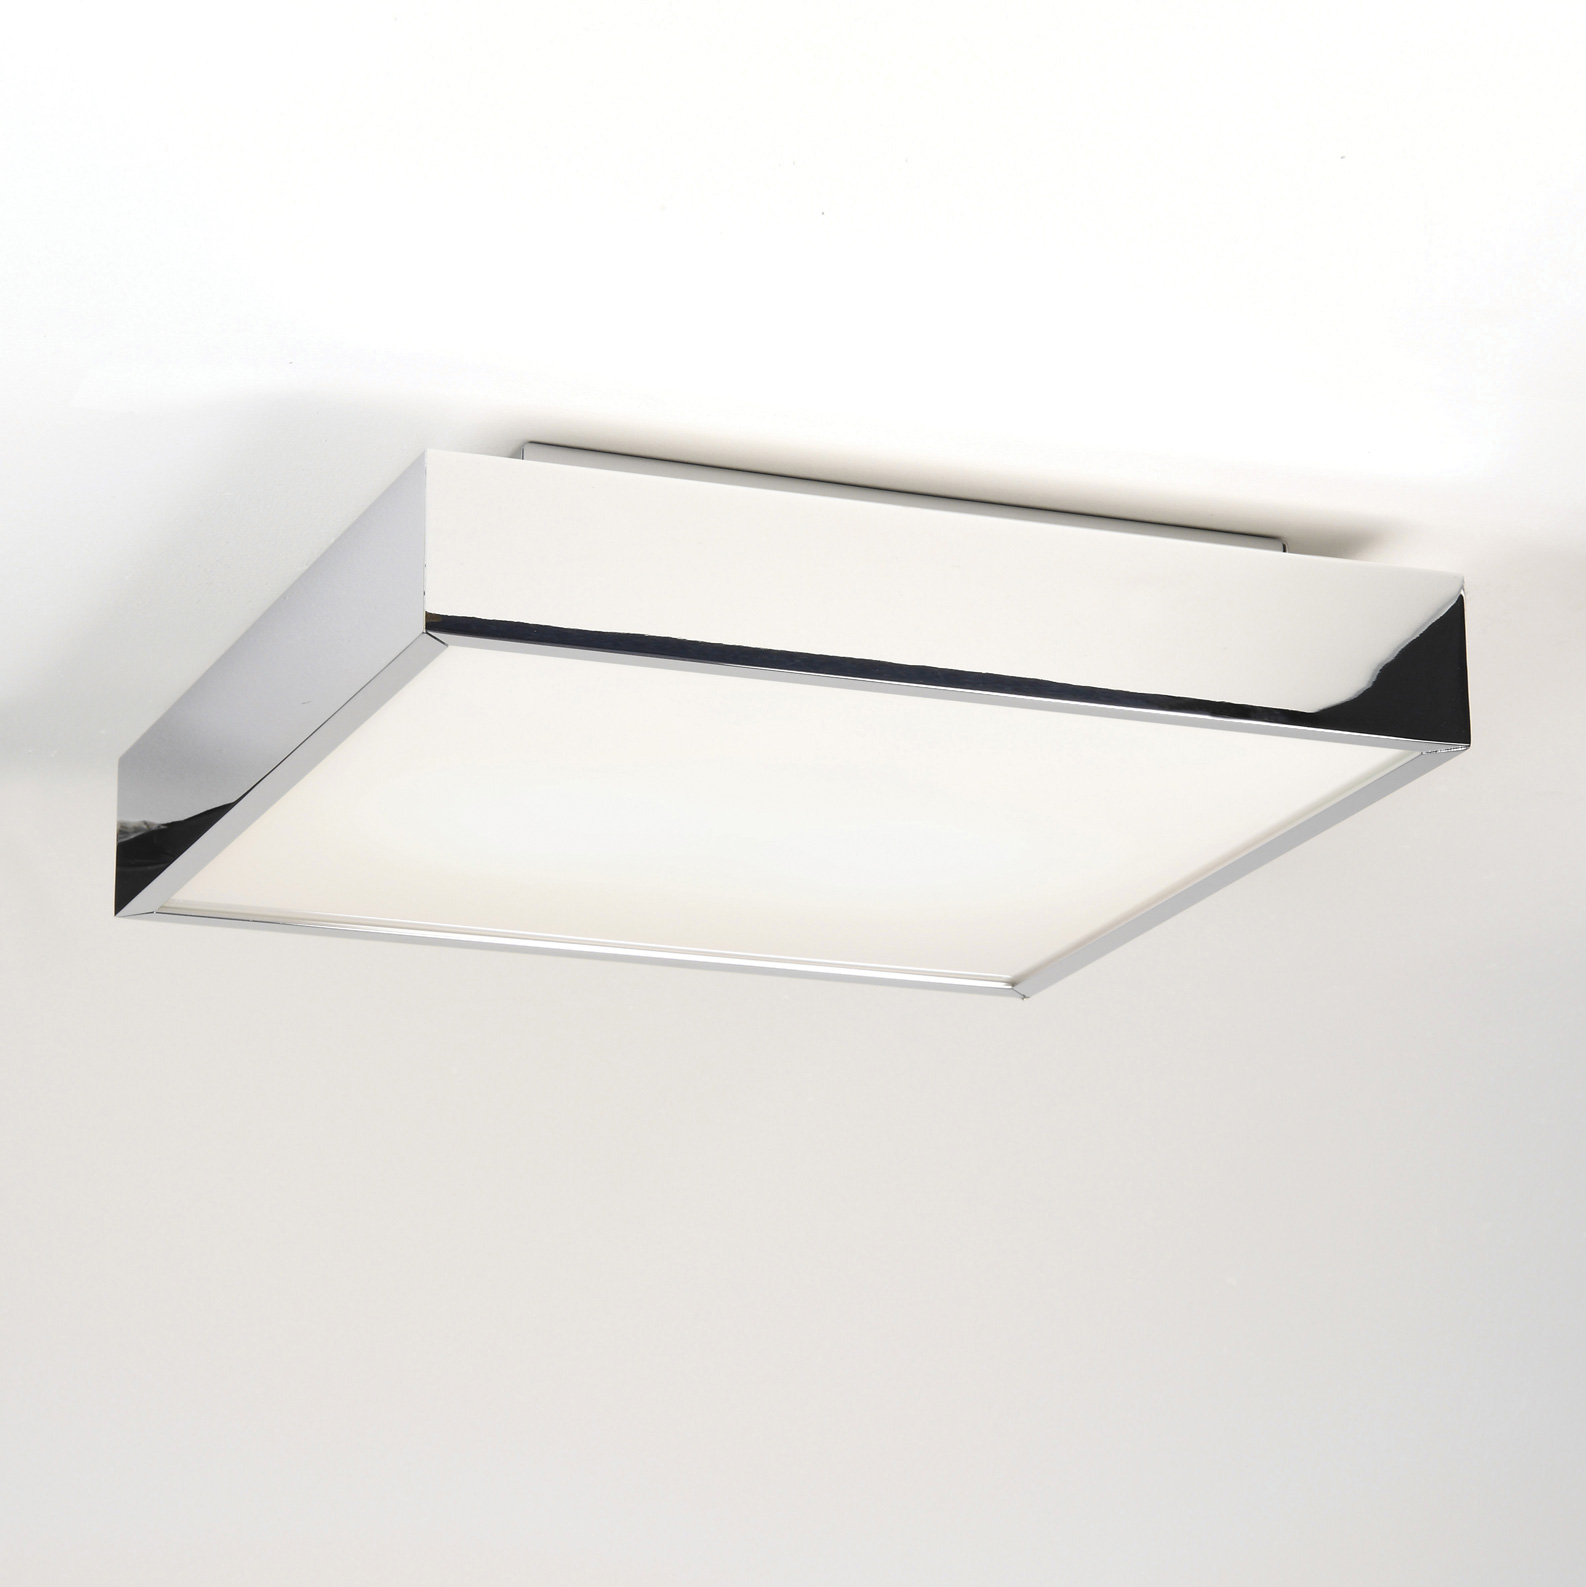 square bathroom lights astro taketa led square bathroom ceiling light 16w 14537 | 7159 Taketa LED ceiling